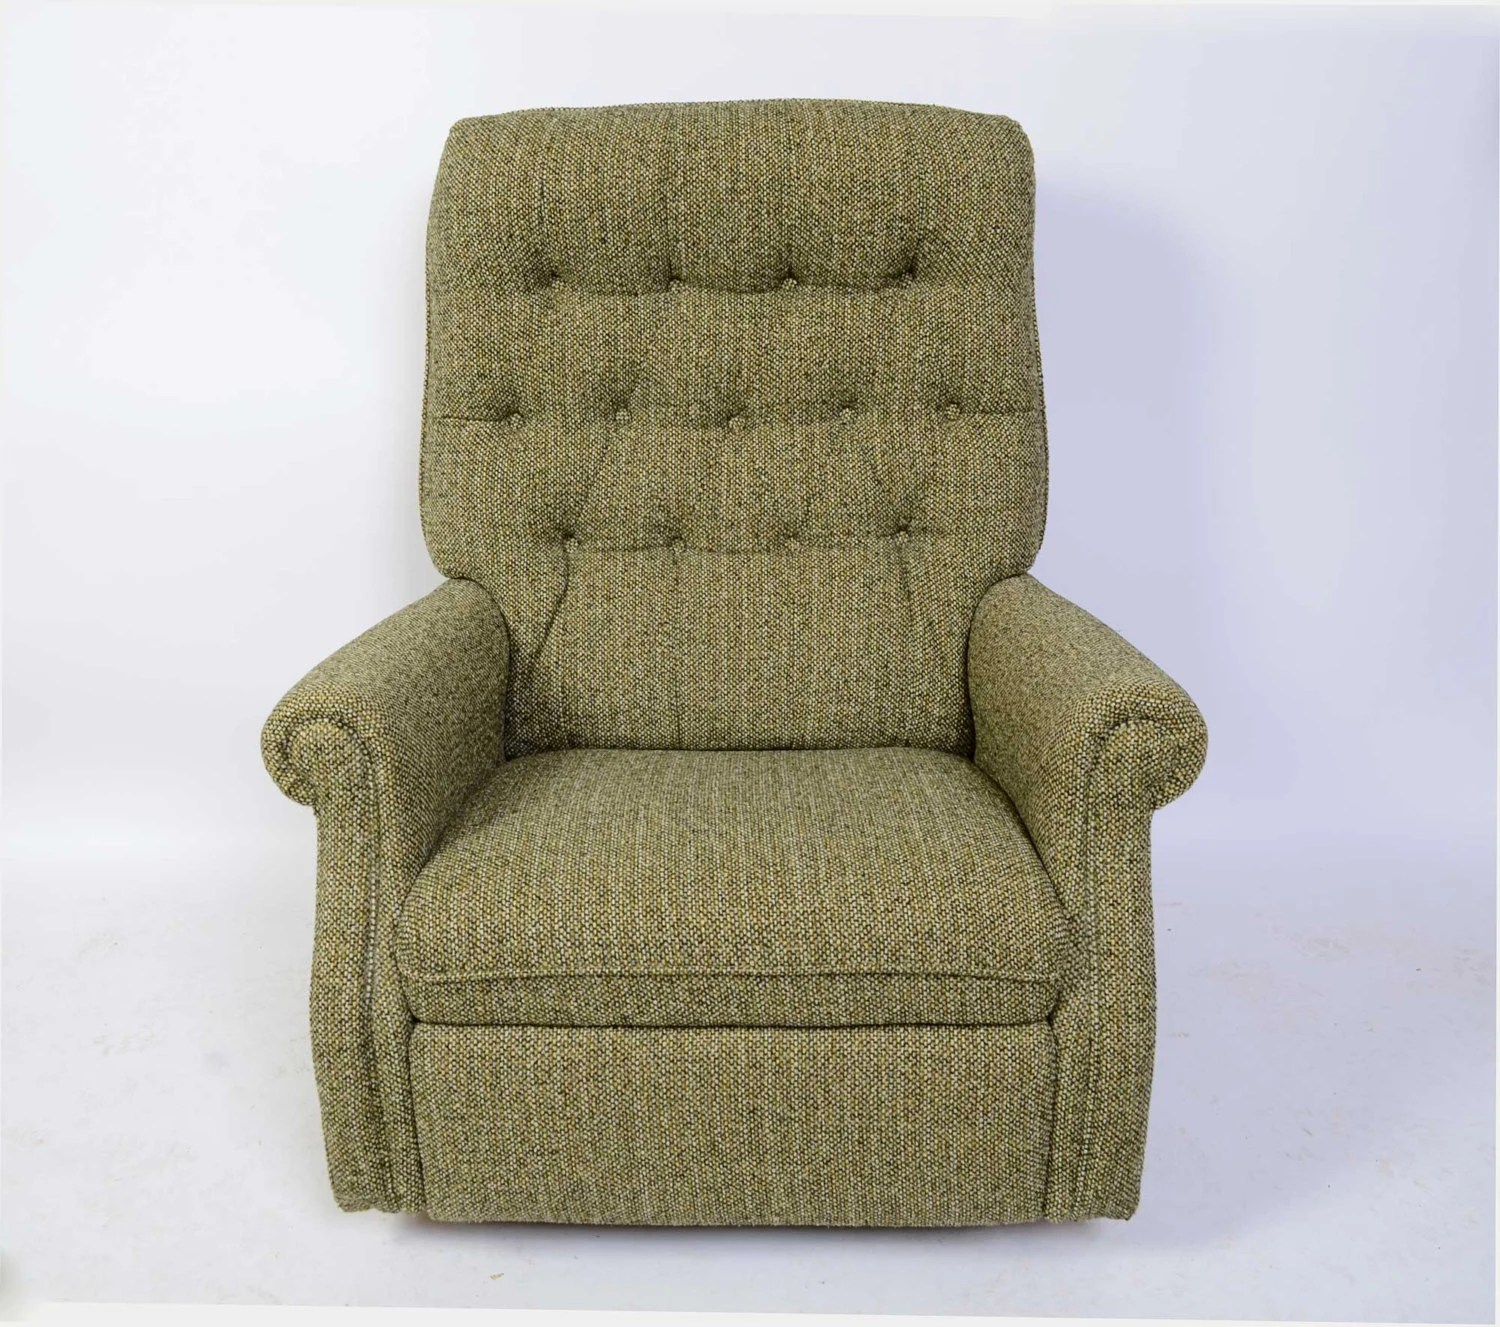 lazy boy chair covers nz yellow adirondack recliner 1970 mid century reading